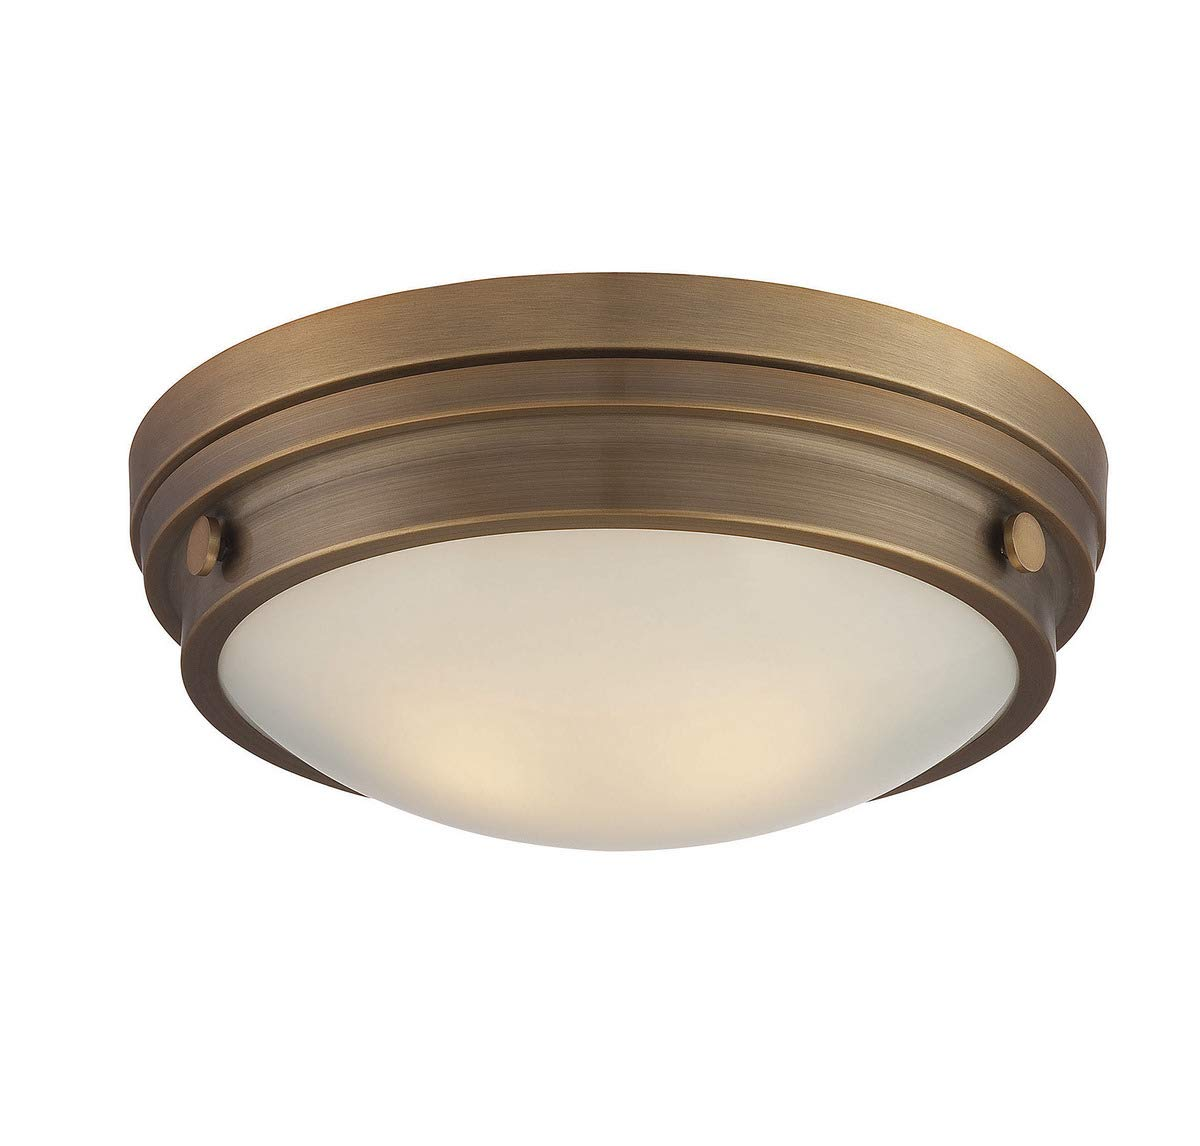 Savoy House Two Light Flush Mount